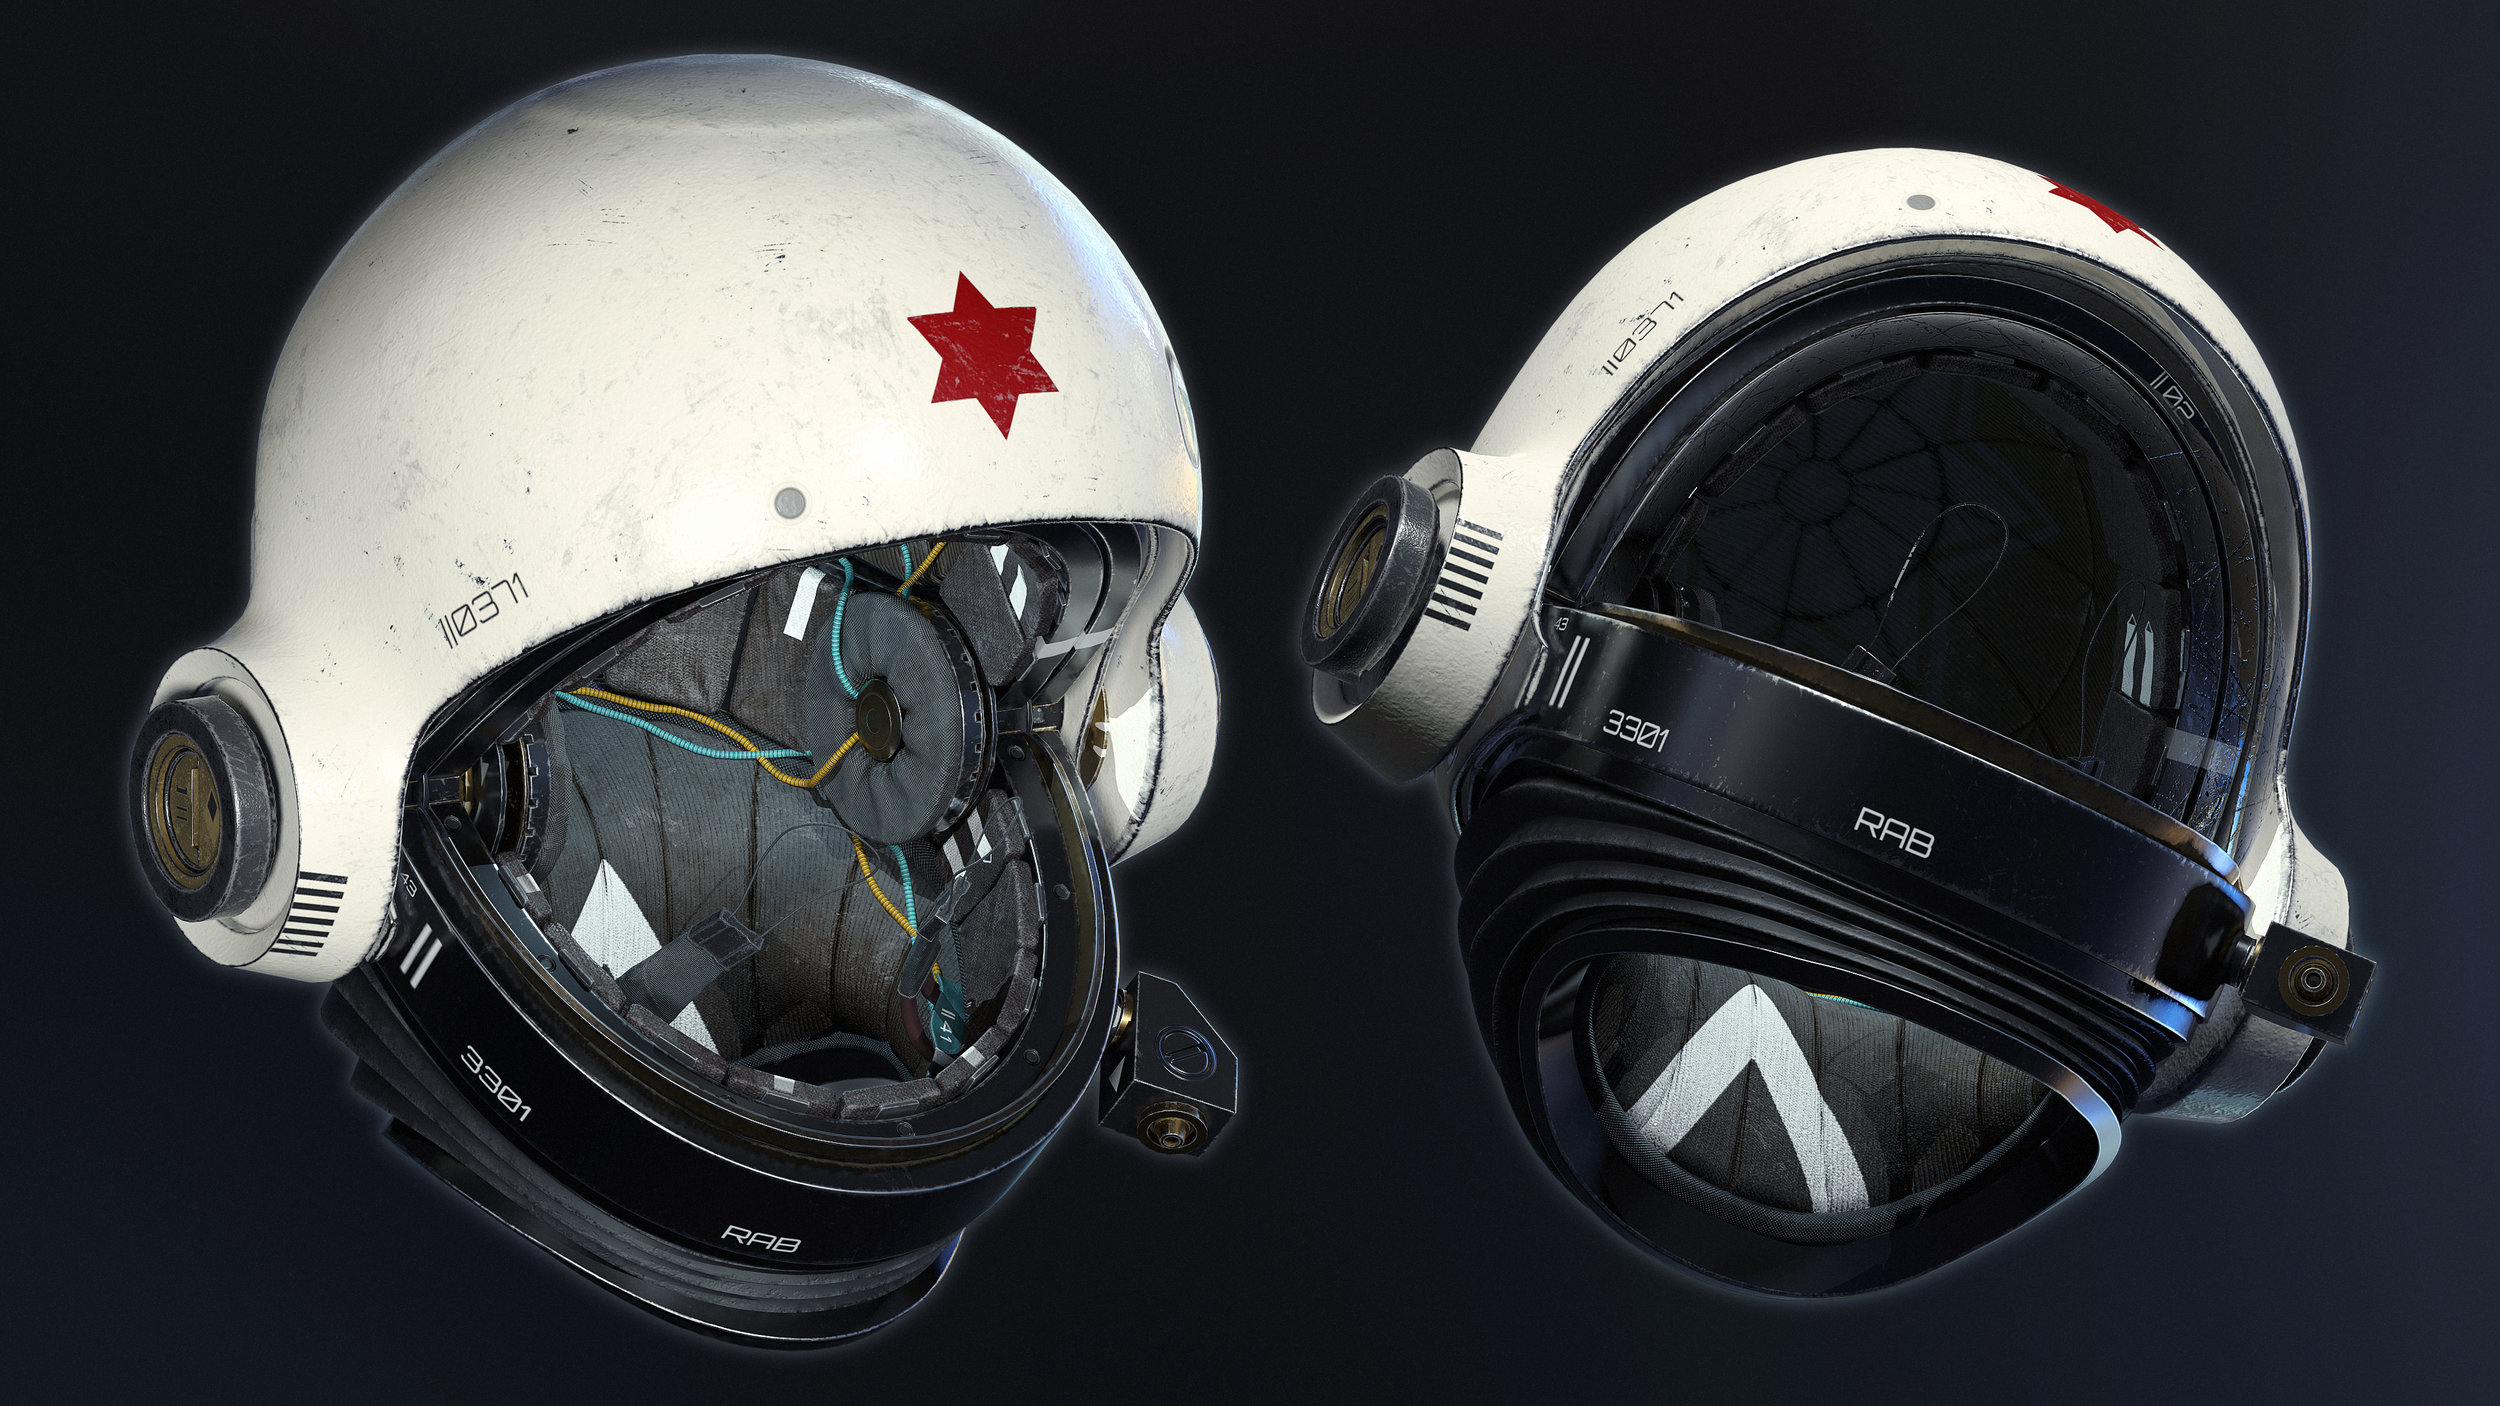 Ryan_Blake_Cosmonaut_Helmet_02-looking up.jpg